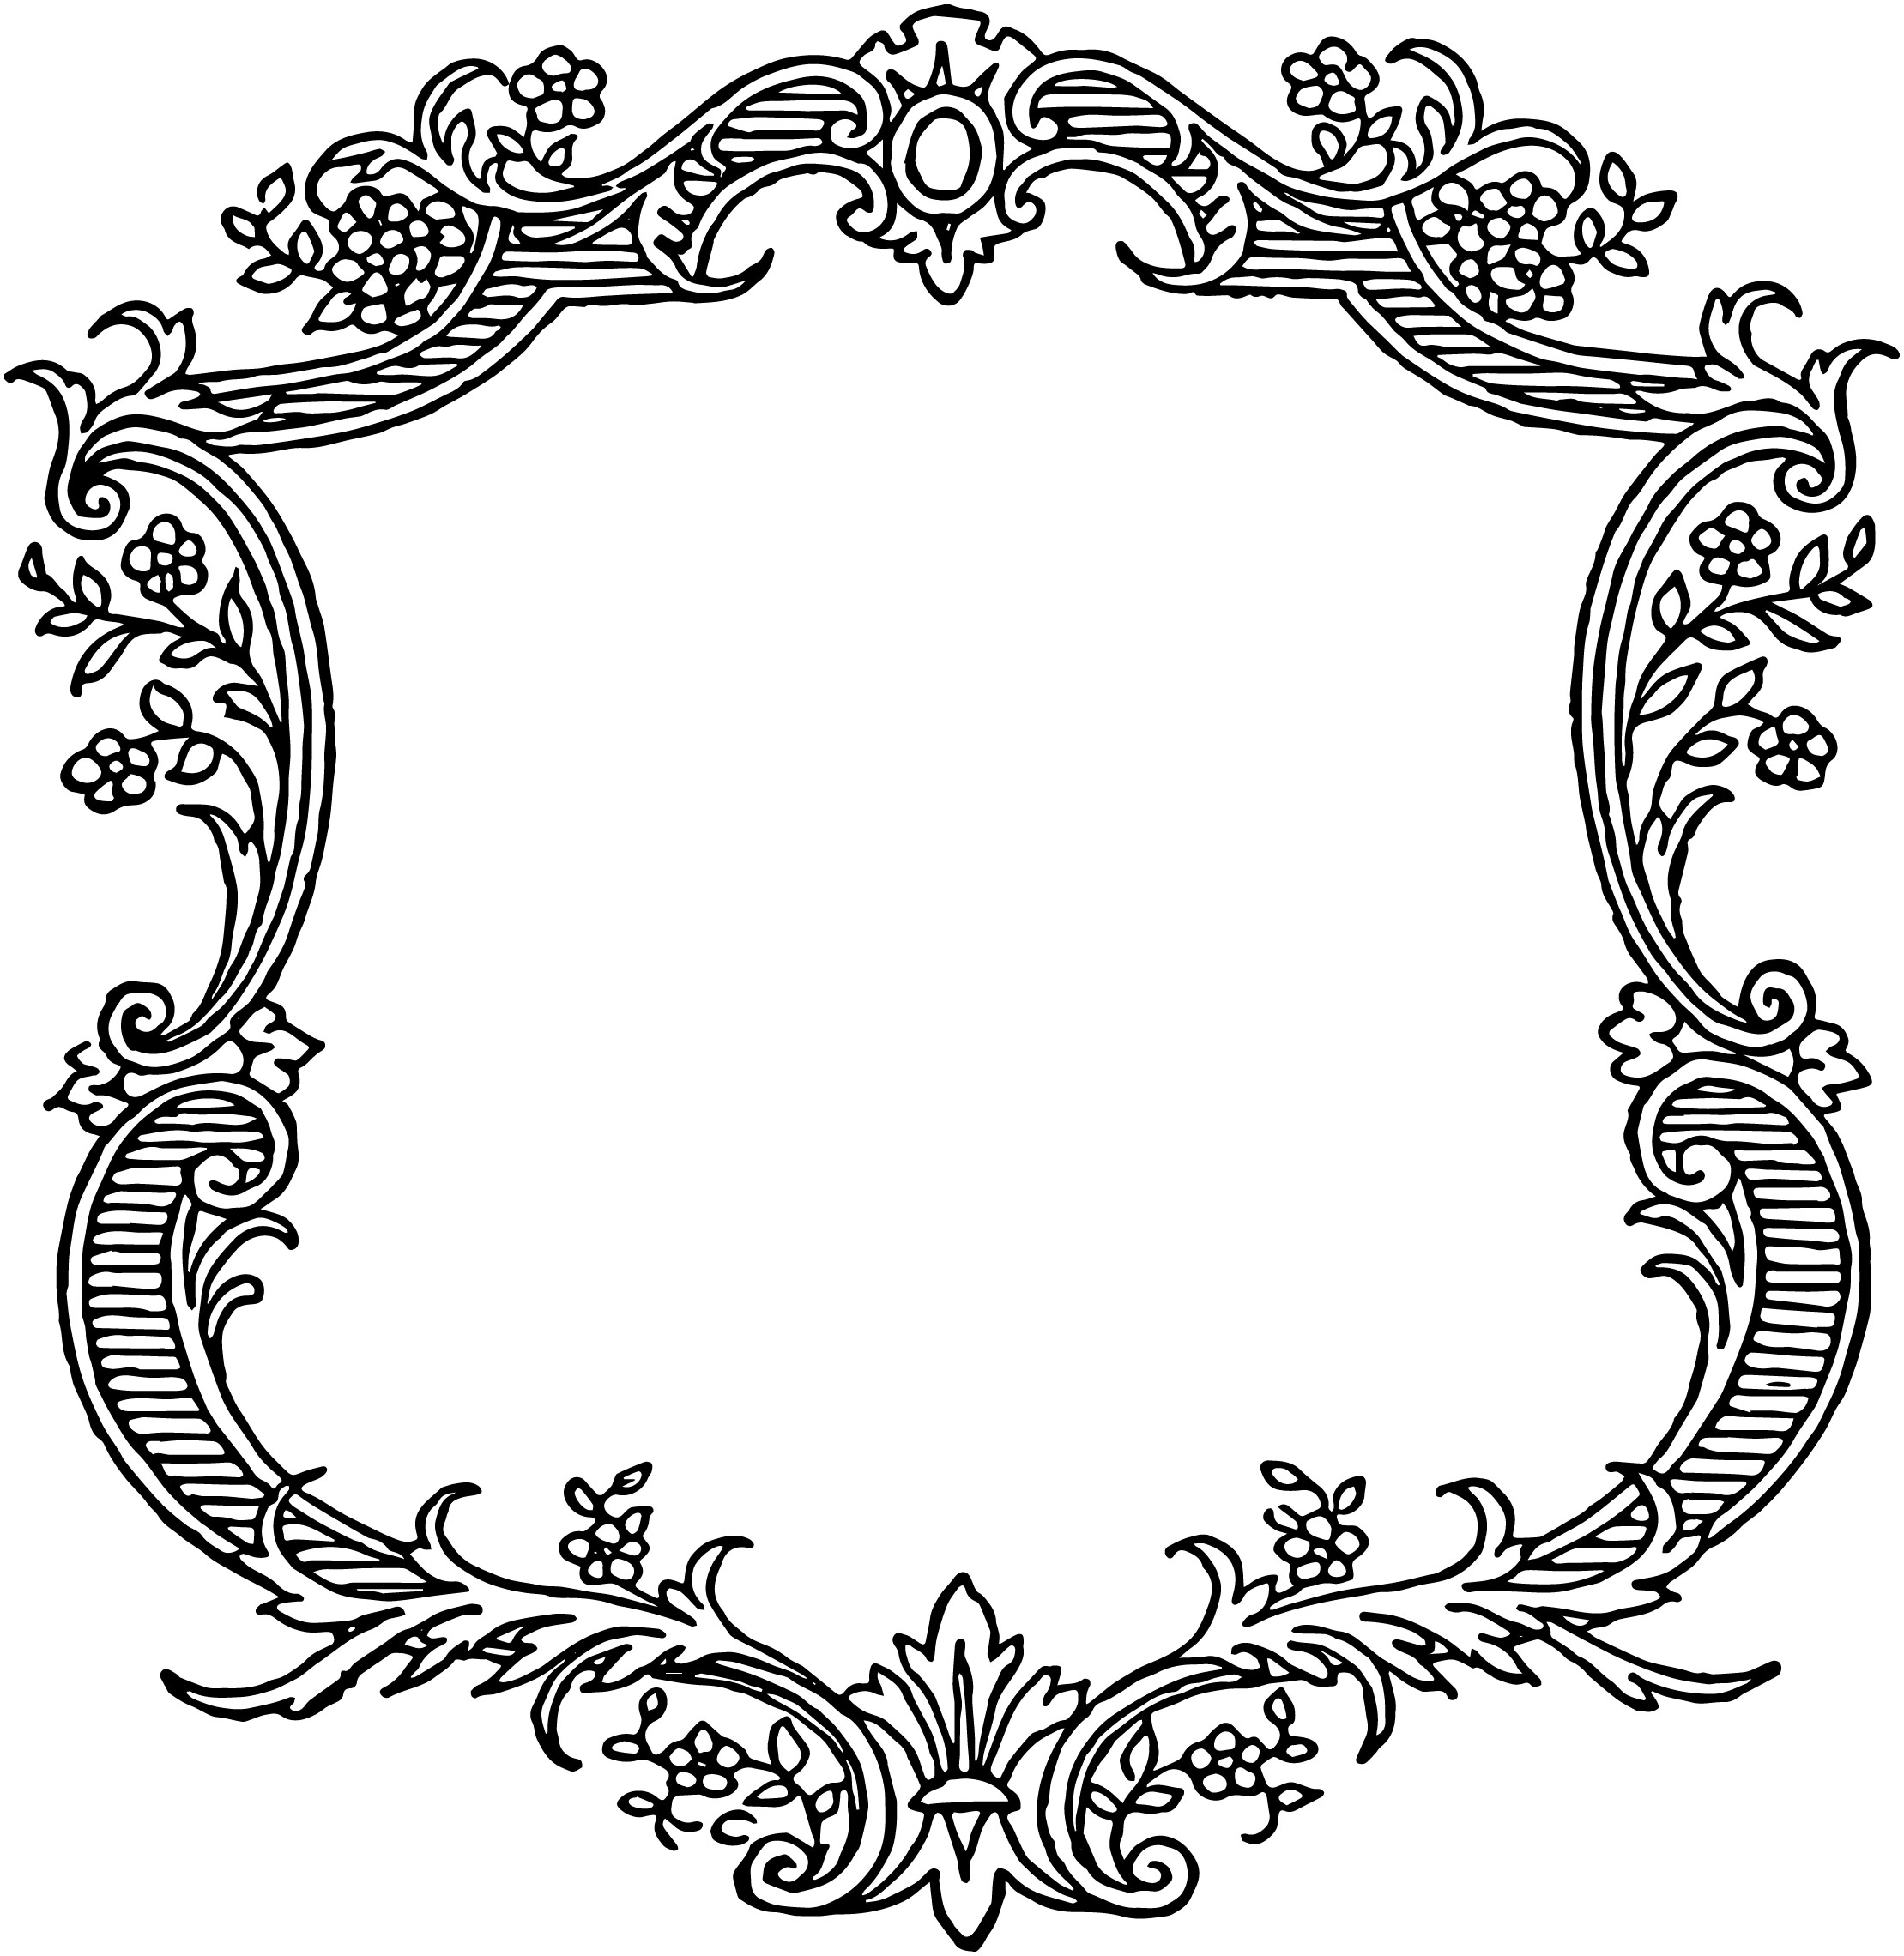 Free Vintage Floral Scroll Border Frame | Oh So Nifty Vintage Graphics